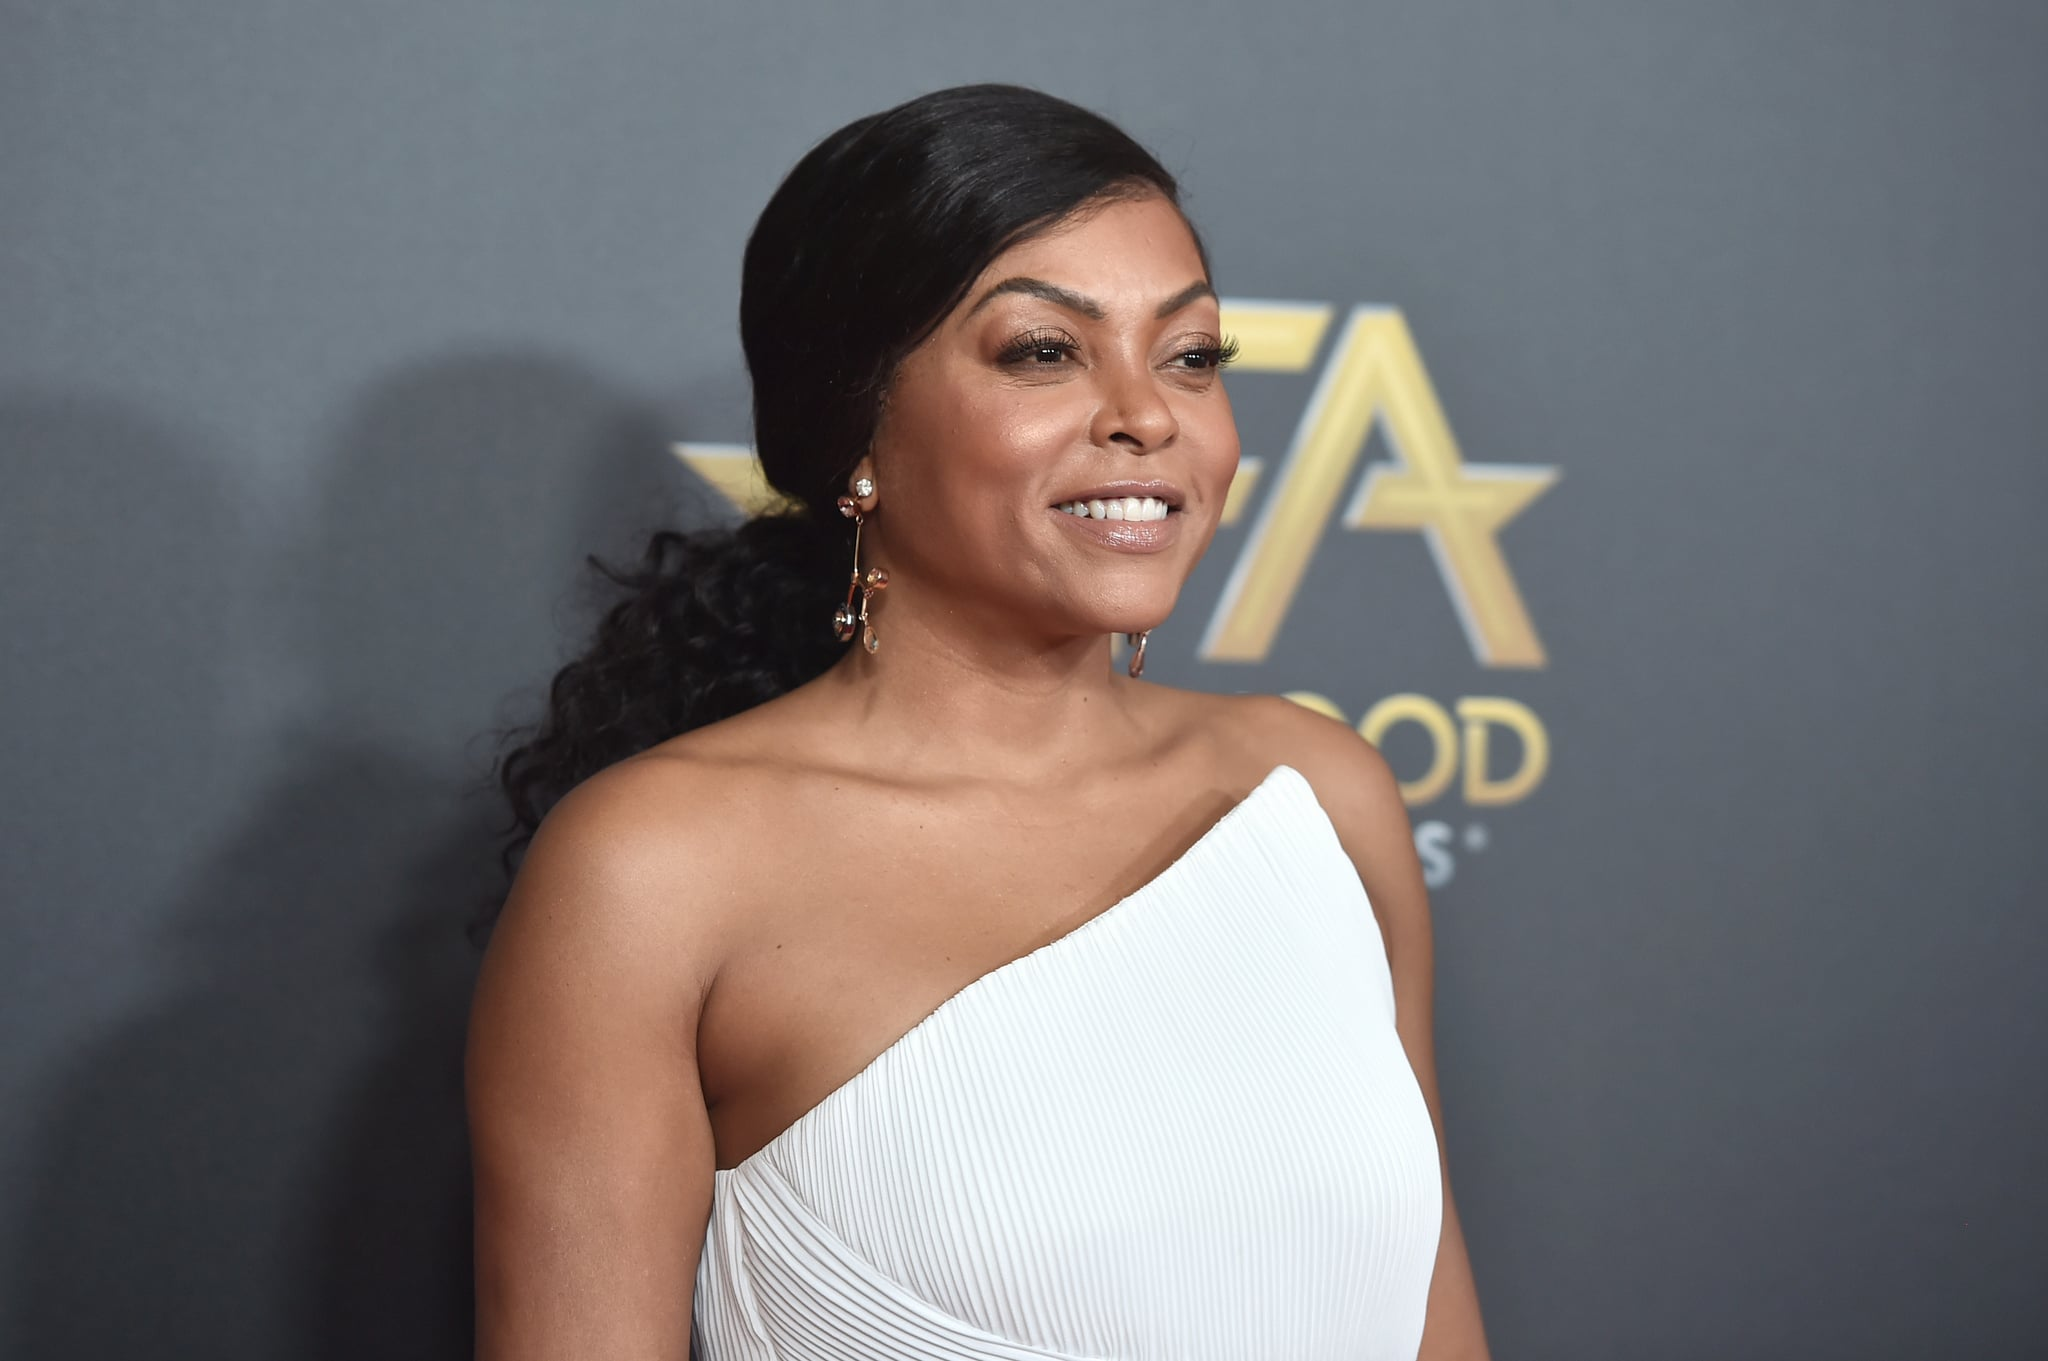 BEVERLY HILLS, CA - NOVEMBER 04:  Taraji P. Henson attends the 22nd Annual Hollywood Film Awards at The Beverly Hilton Hotel on November 4, 2018 in Beverly Hills, California.  (Photo by Alberto E. Rodriguez/Getty Images for HFA)